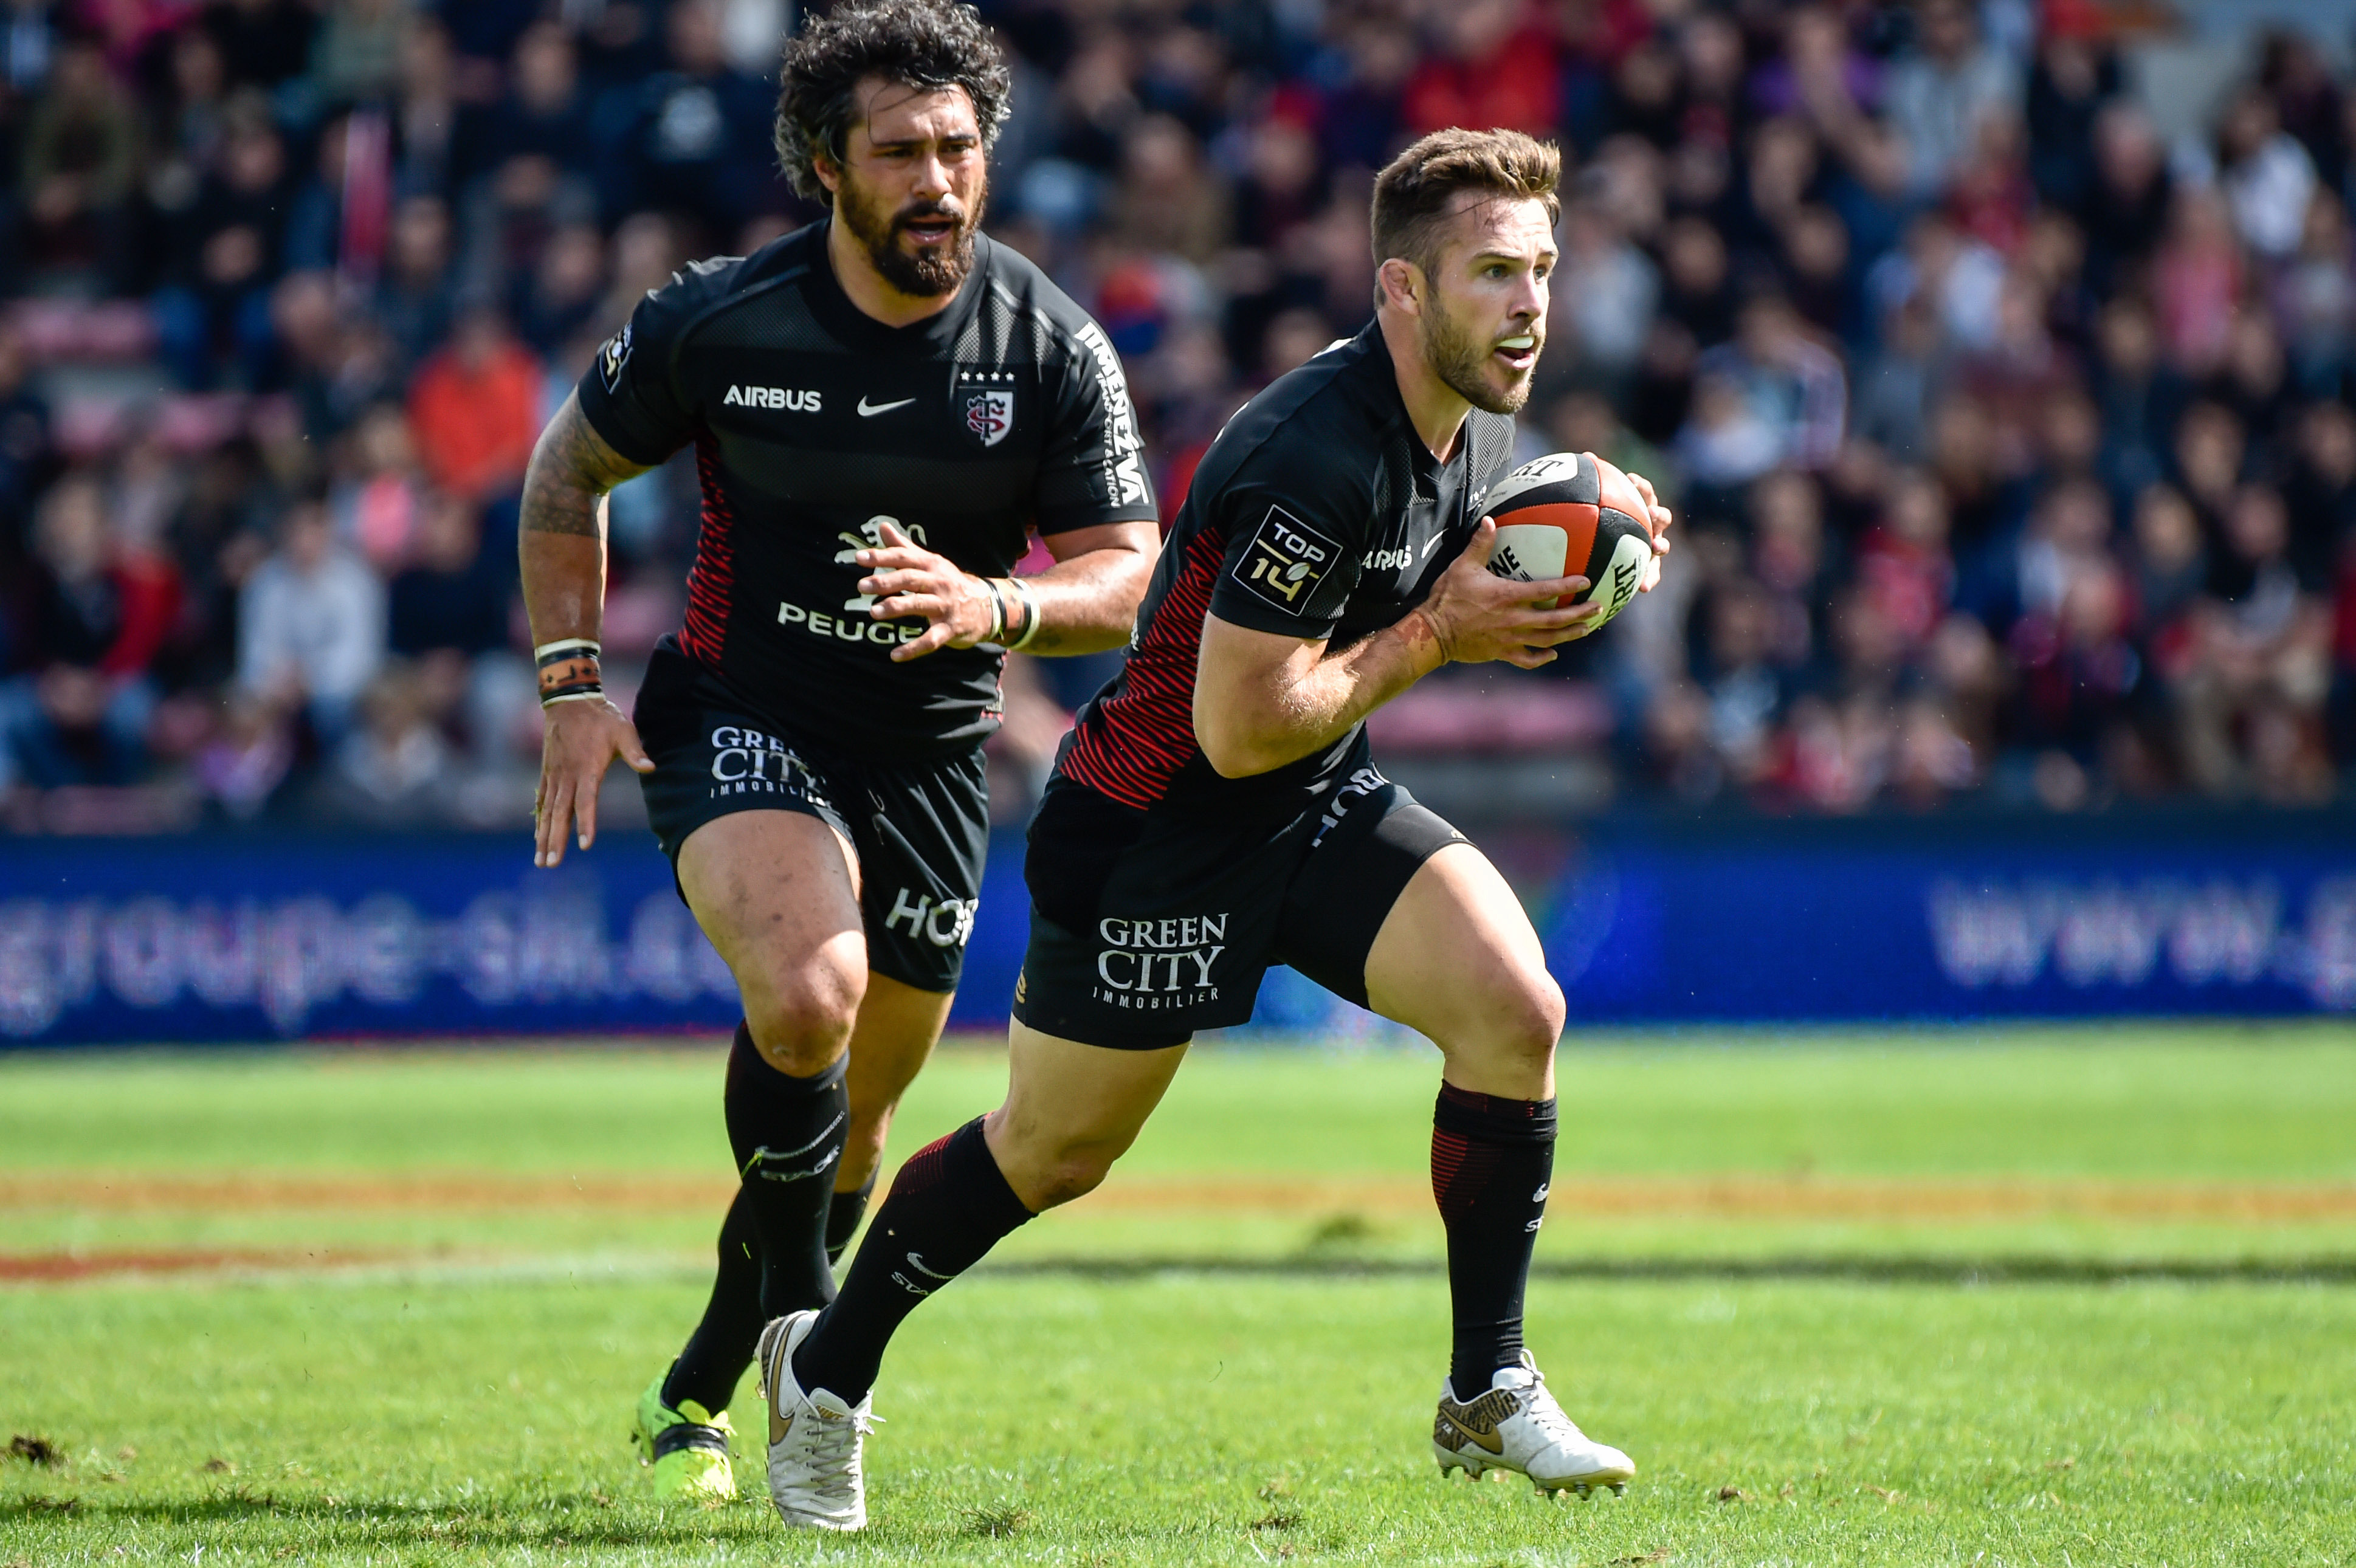 Rugby - Top 14 - Le Stade toulousain, voyages avides